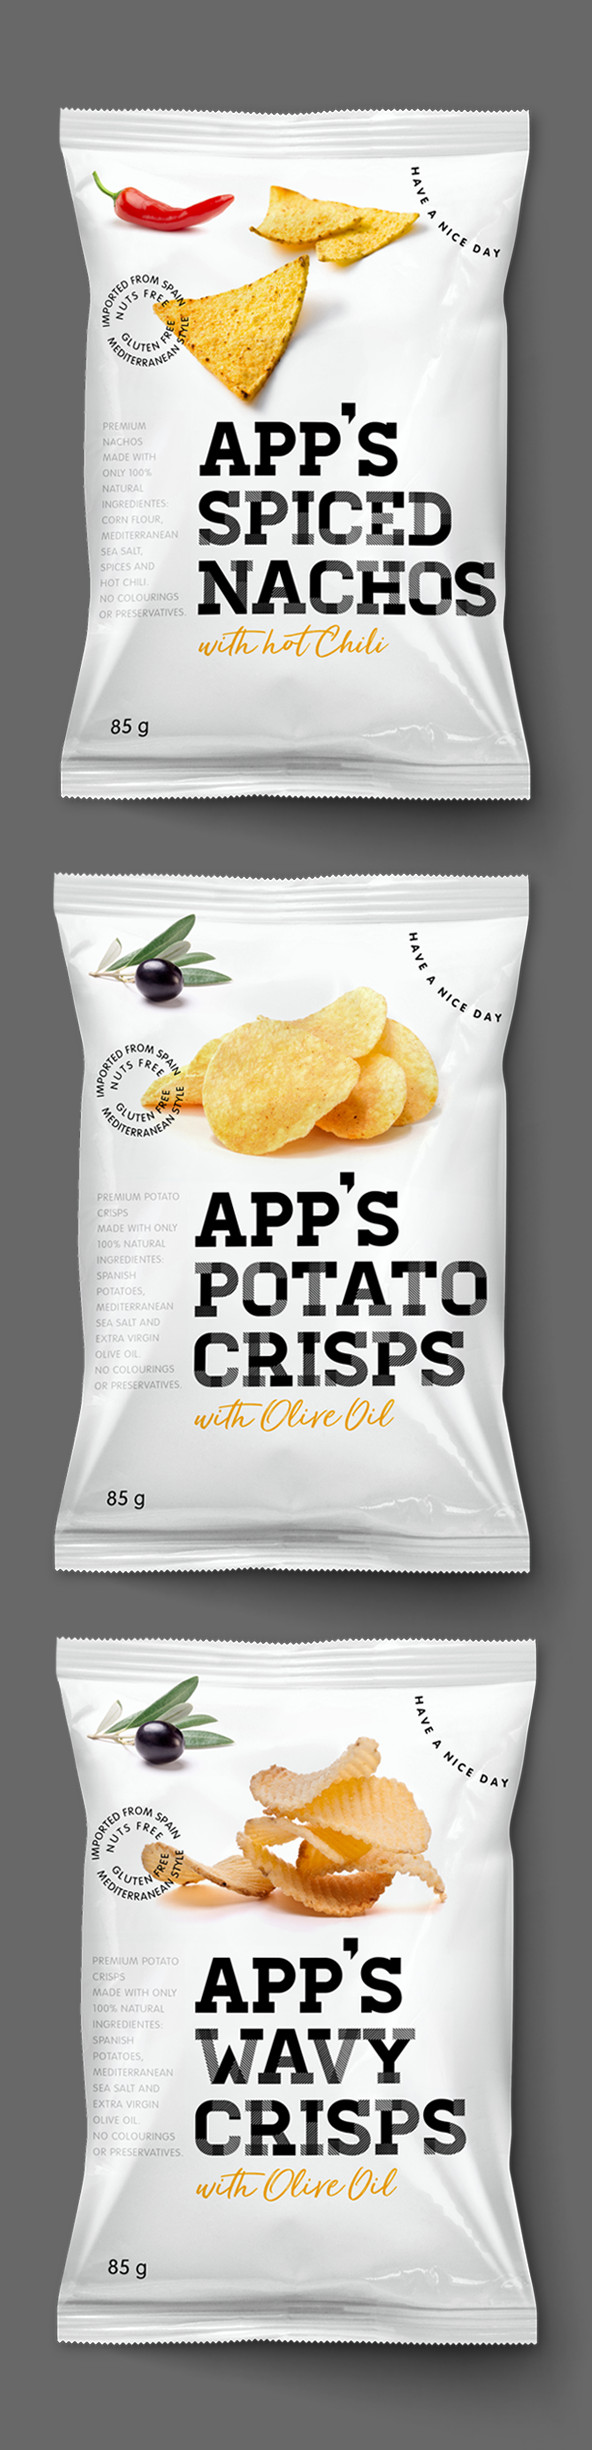 App's Diseño Packaging Snack Spiced Nachos Potato Crisps Wavy Crisps